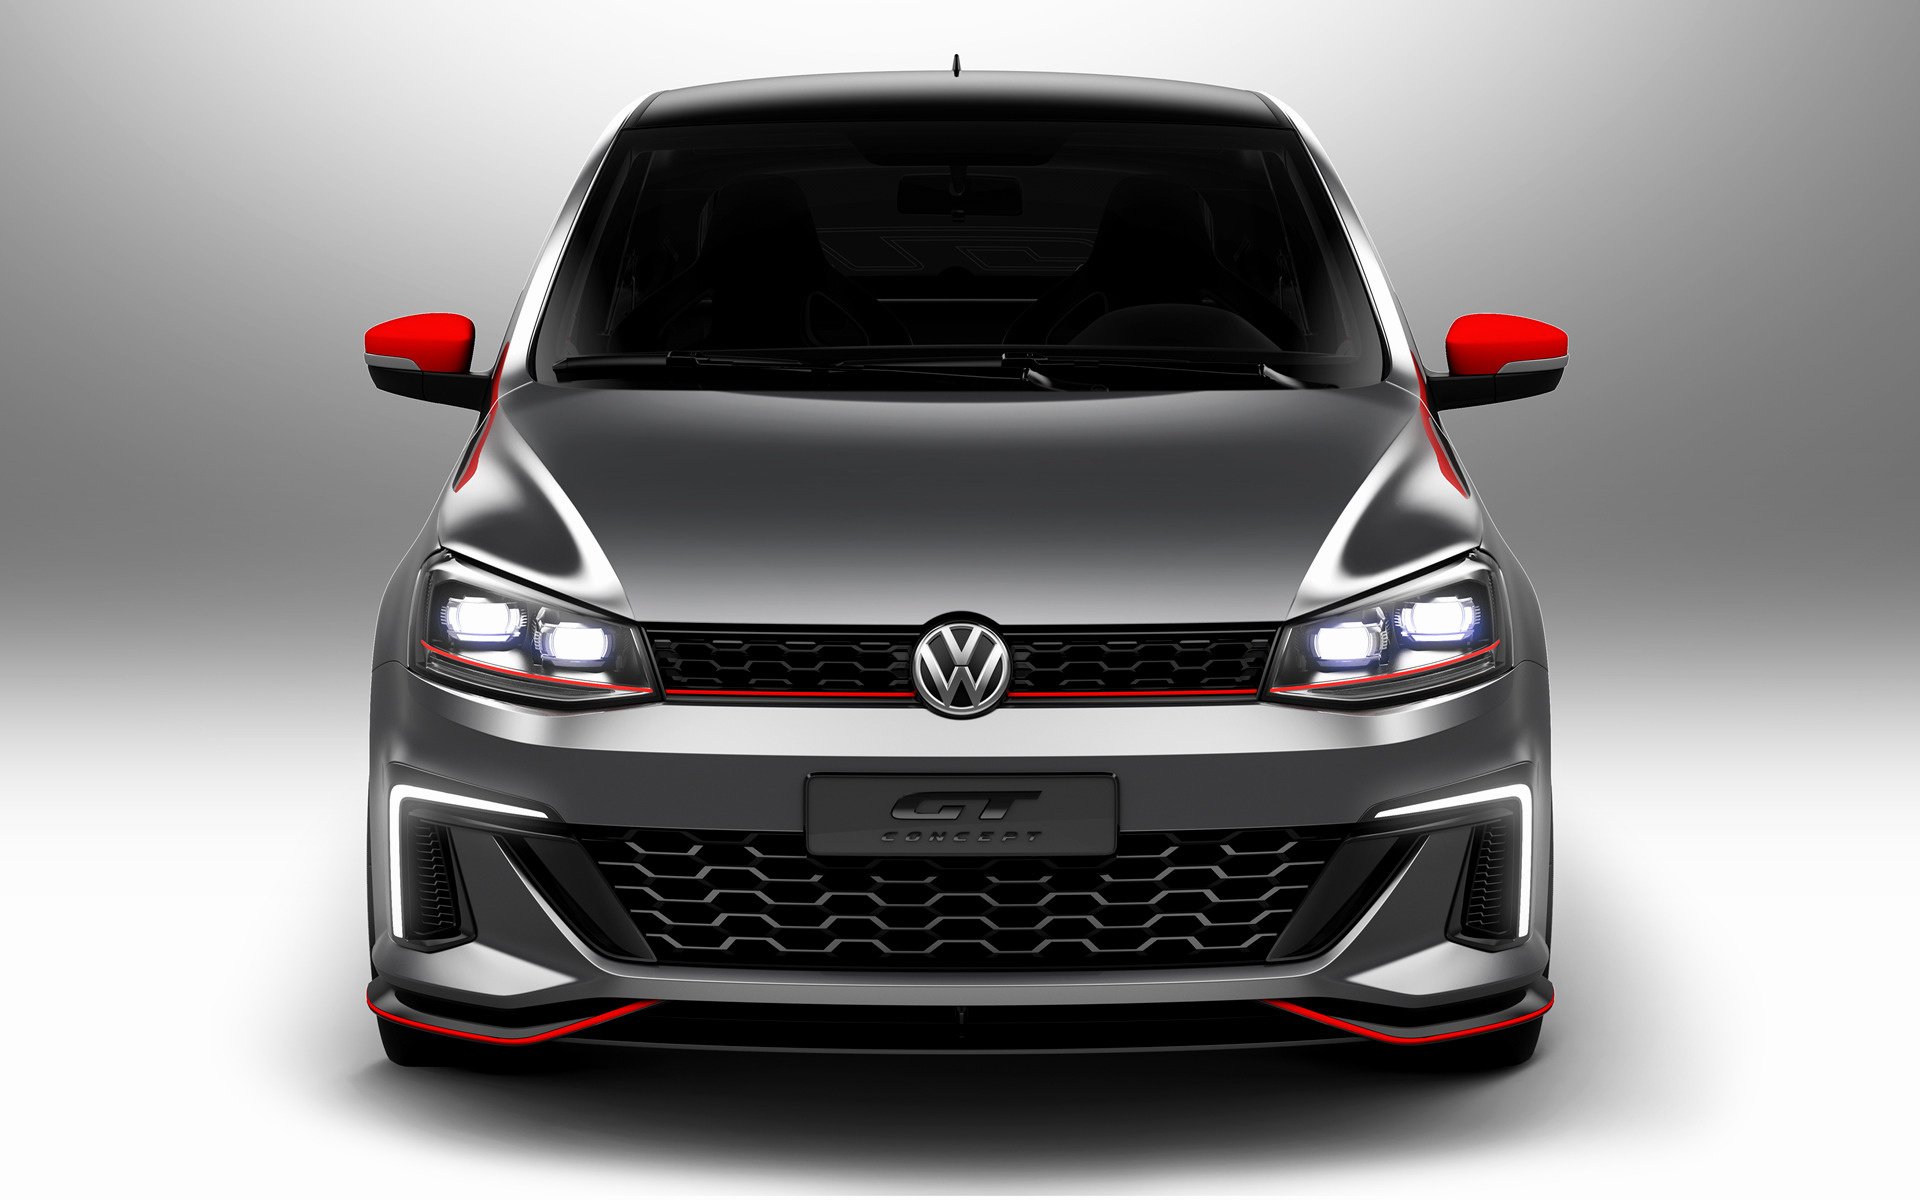 2016 Land Rover >> 2016 Volkswagen Gol GT Concept - Wallpapers and HD Images ...